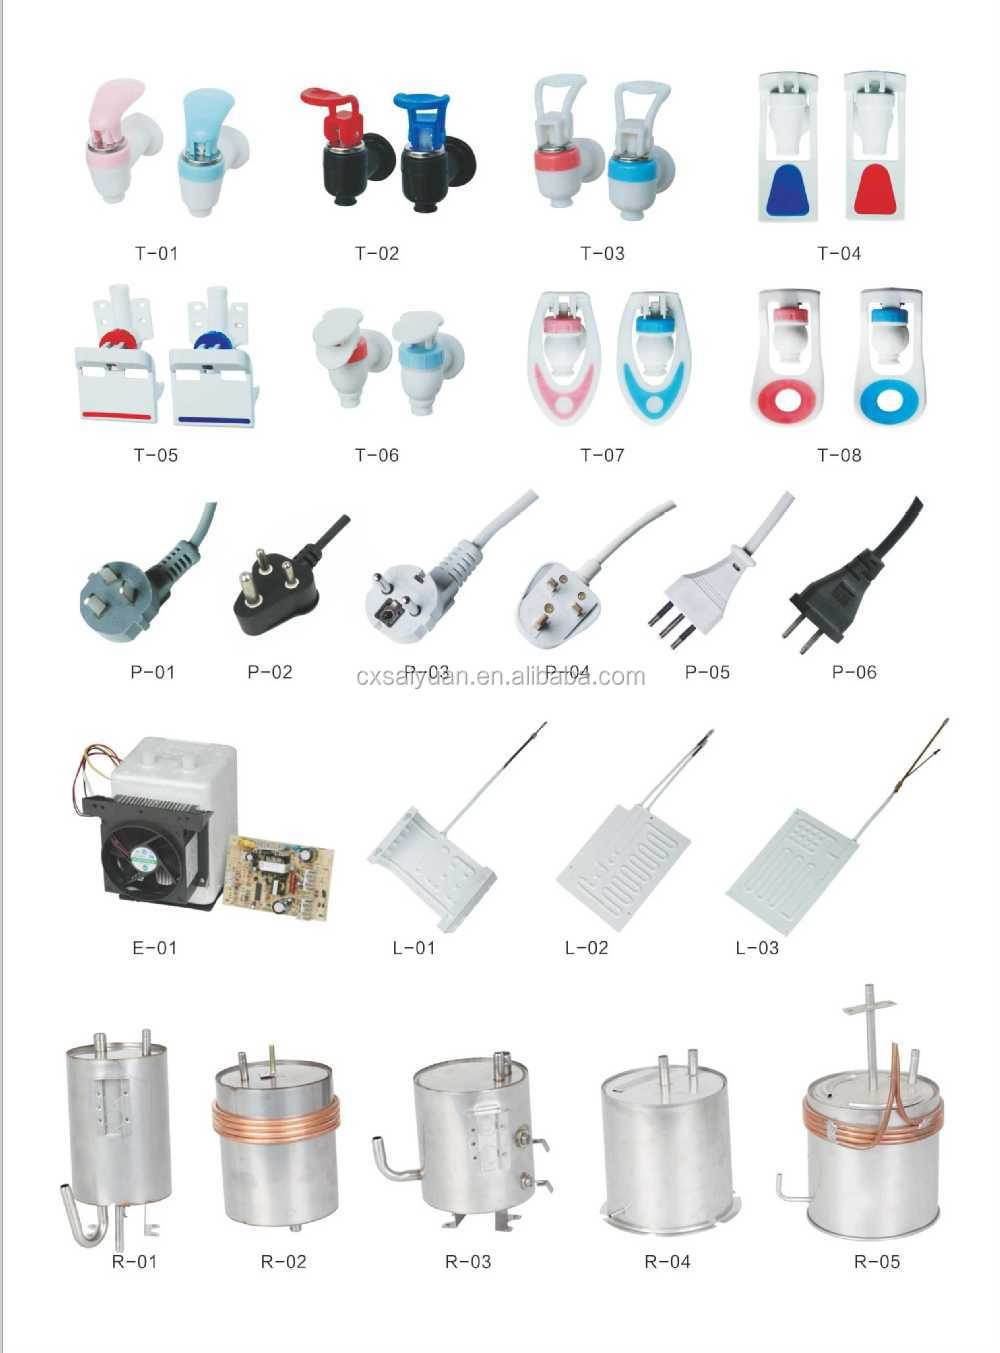 Water Dispenser Spare Parts, Water Dispenser Spare Parts Suppliers ...